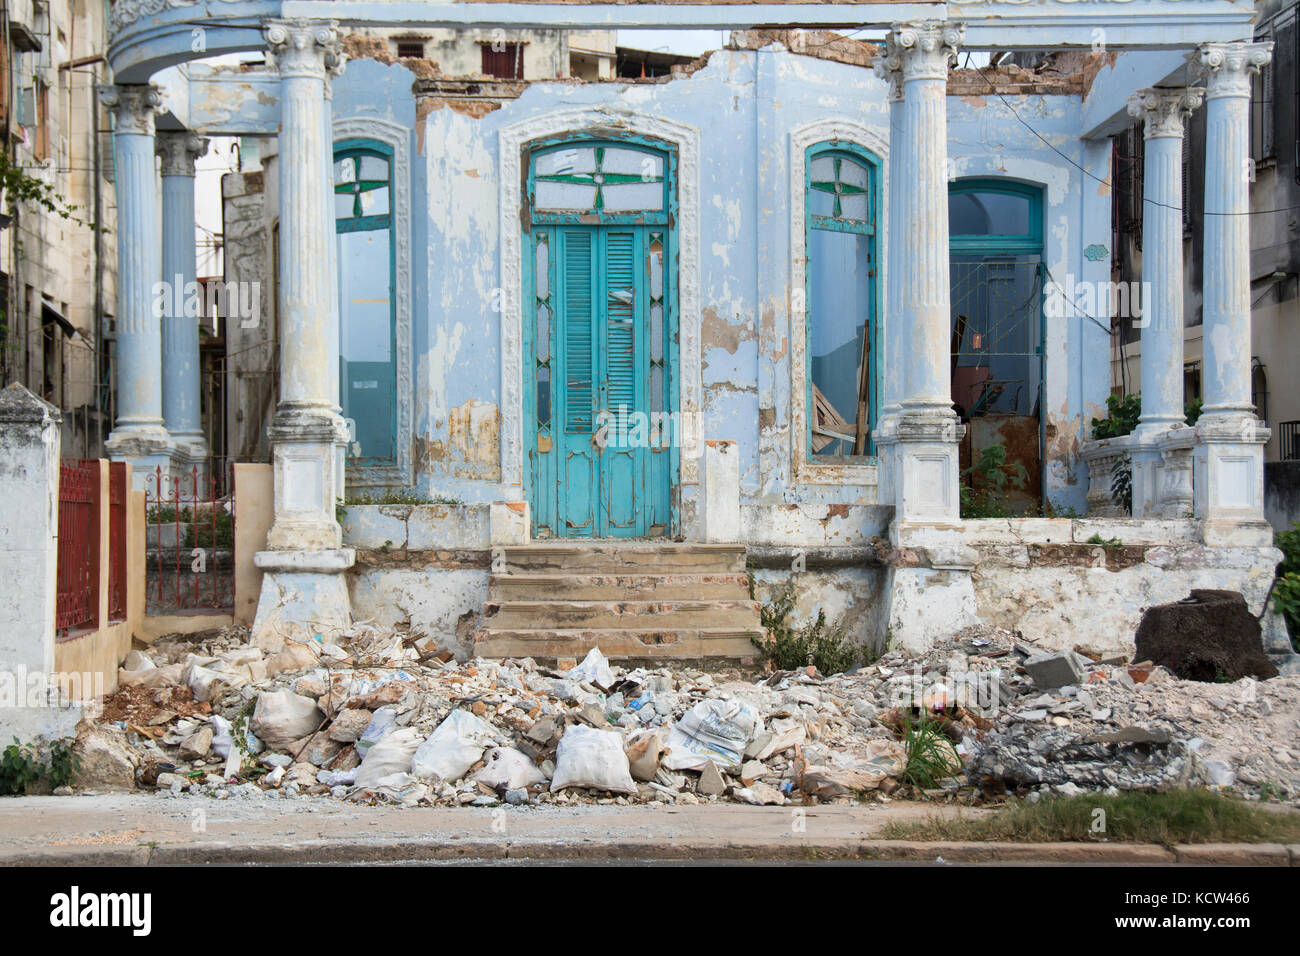 Decaying mansion, Vedado, Havana, Cuba - Stock Image